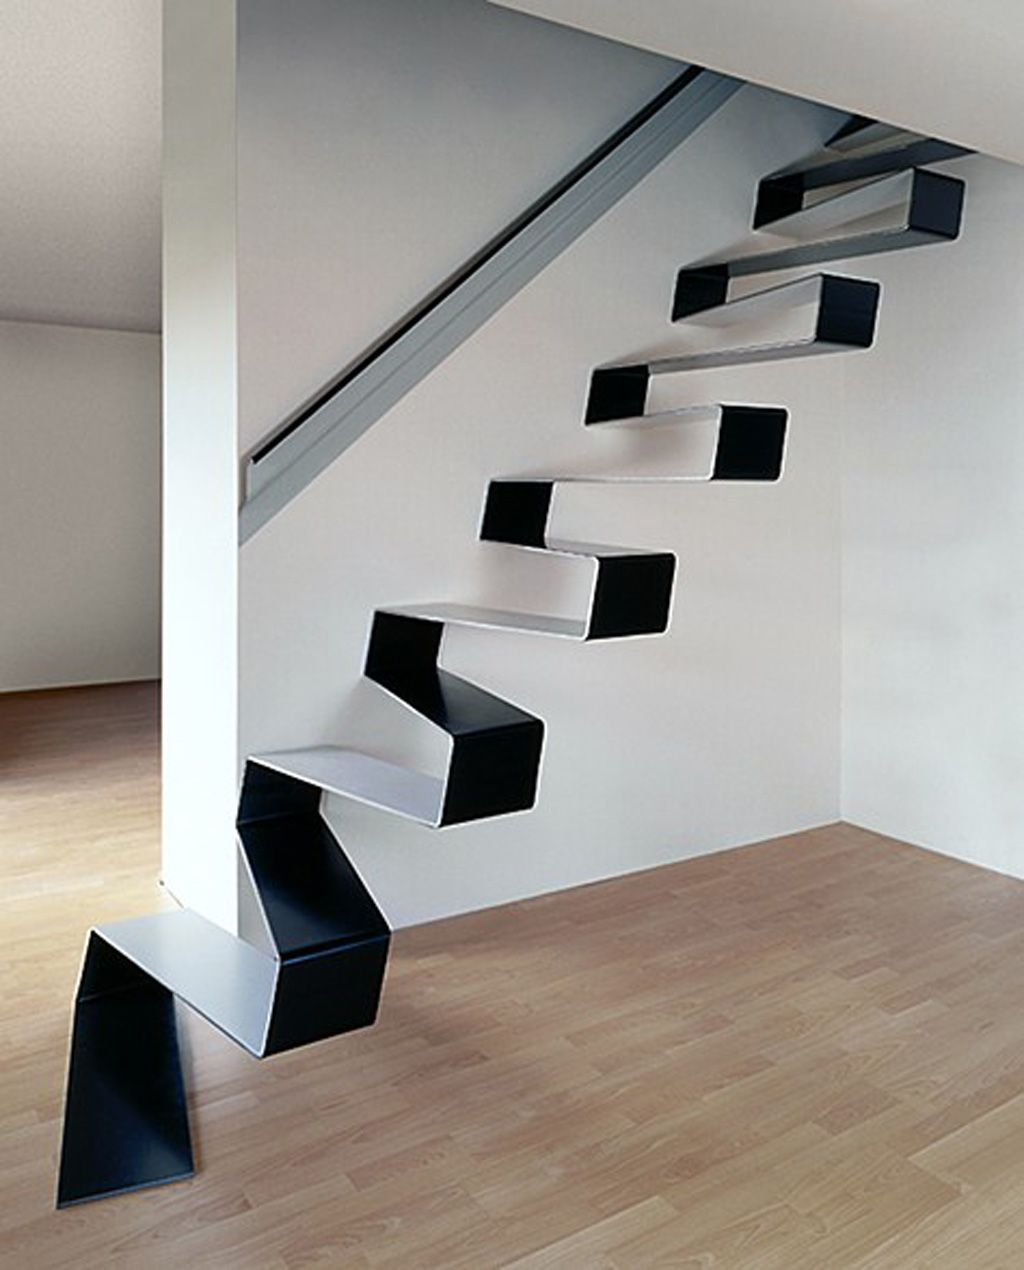 Stairs Design Ideas modern interior stairs designs staircase railing ideas 1000 Images About Lovely Staircase Design On Pinterest Staircase Design Wooden Staircase Design And Stair Design